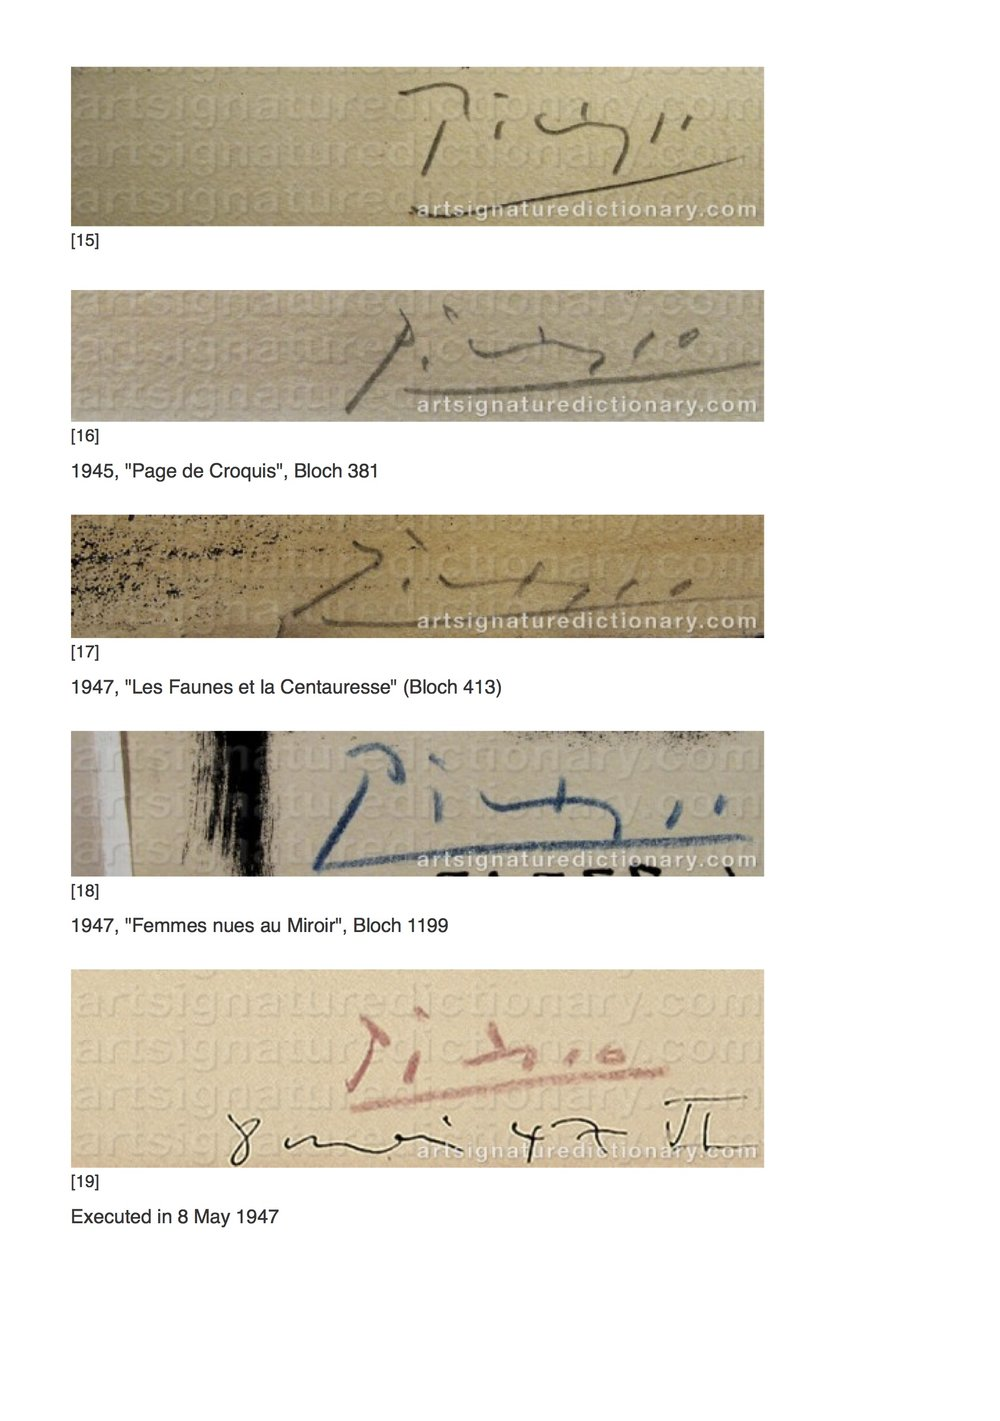 PICASSO, Pablo _ Artist's signatures and monograms, biographies and prices by Art Signature Dictionary4.jpg